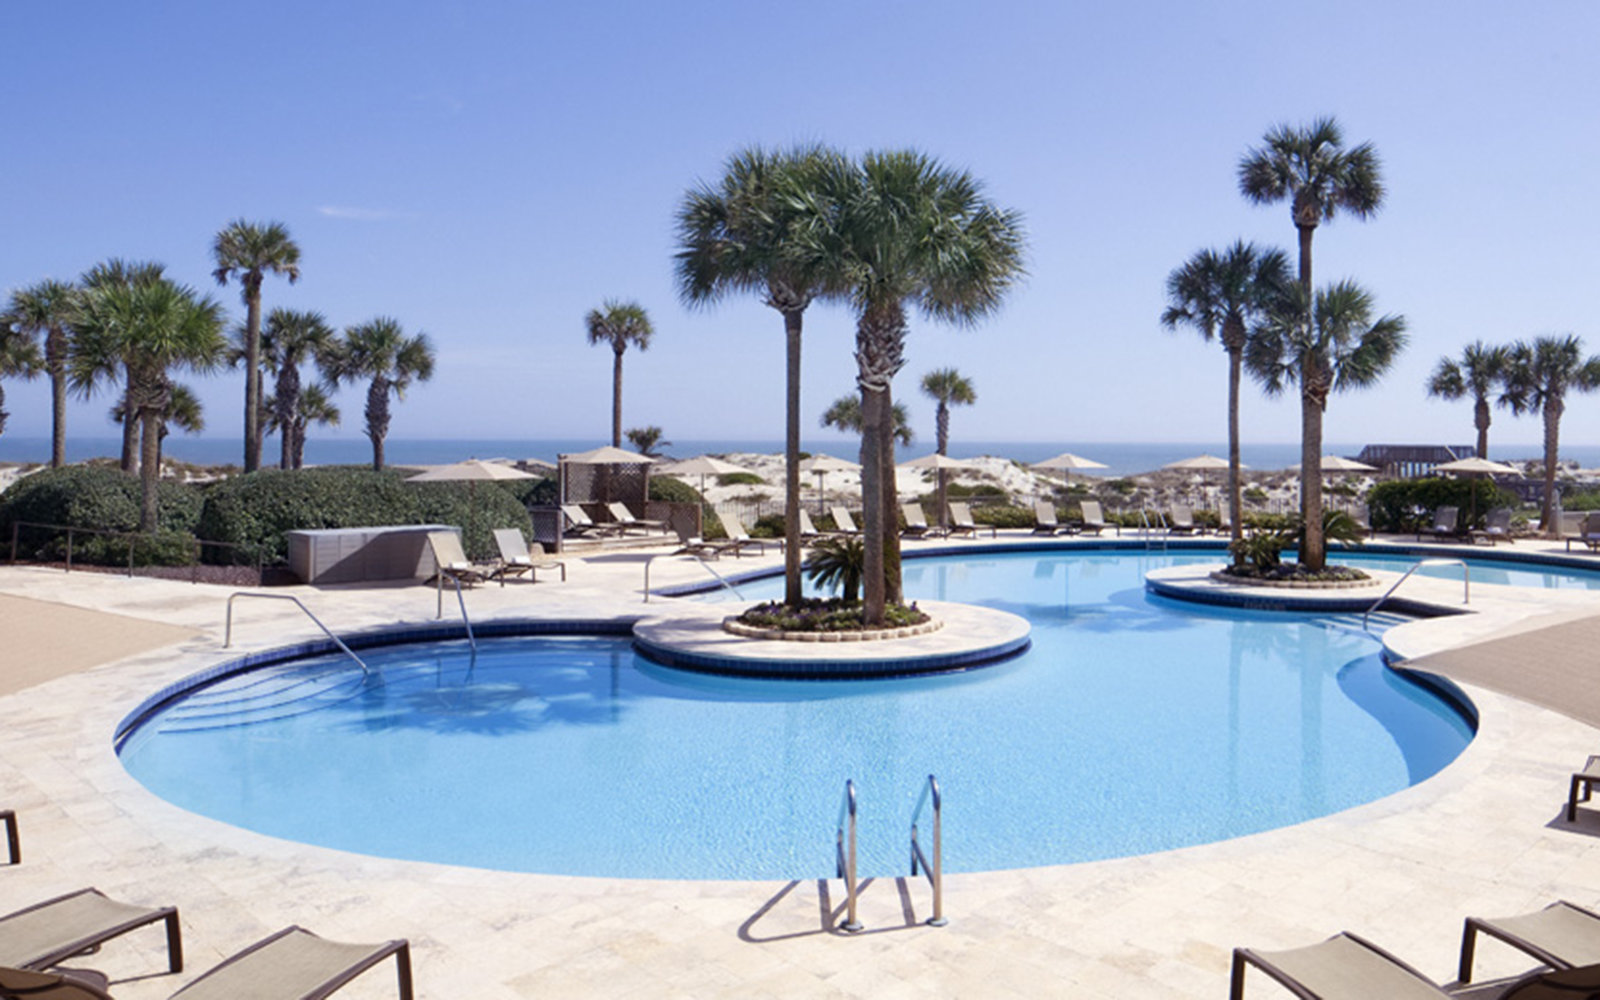 No. 23 The Ritz Carlton, Amelia Island: Florida